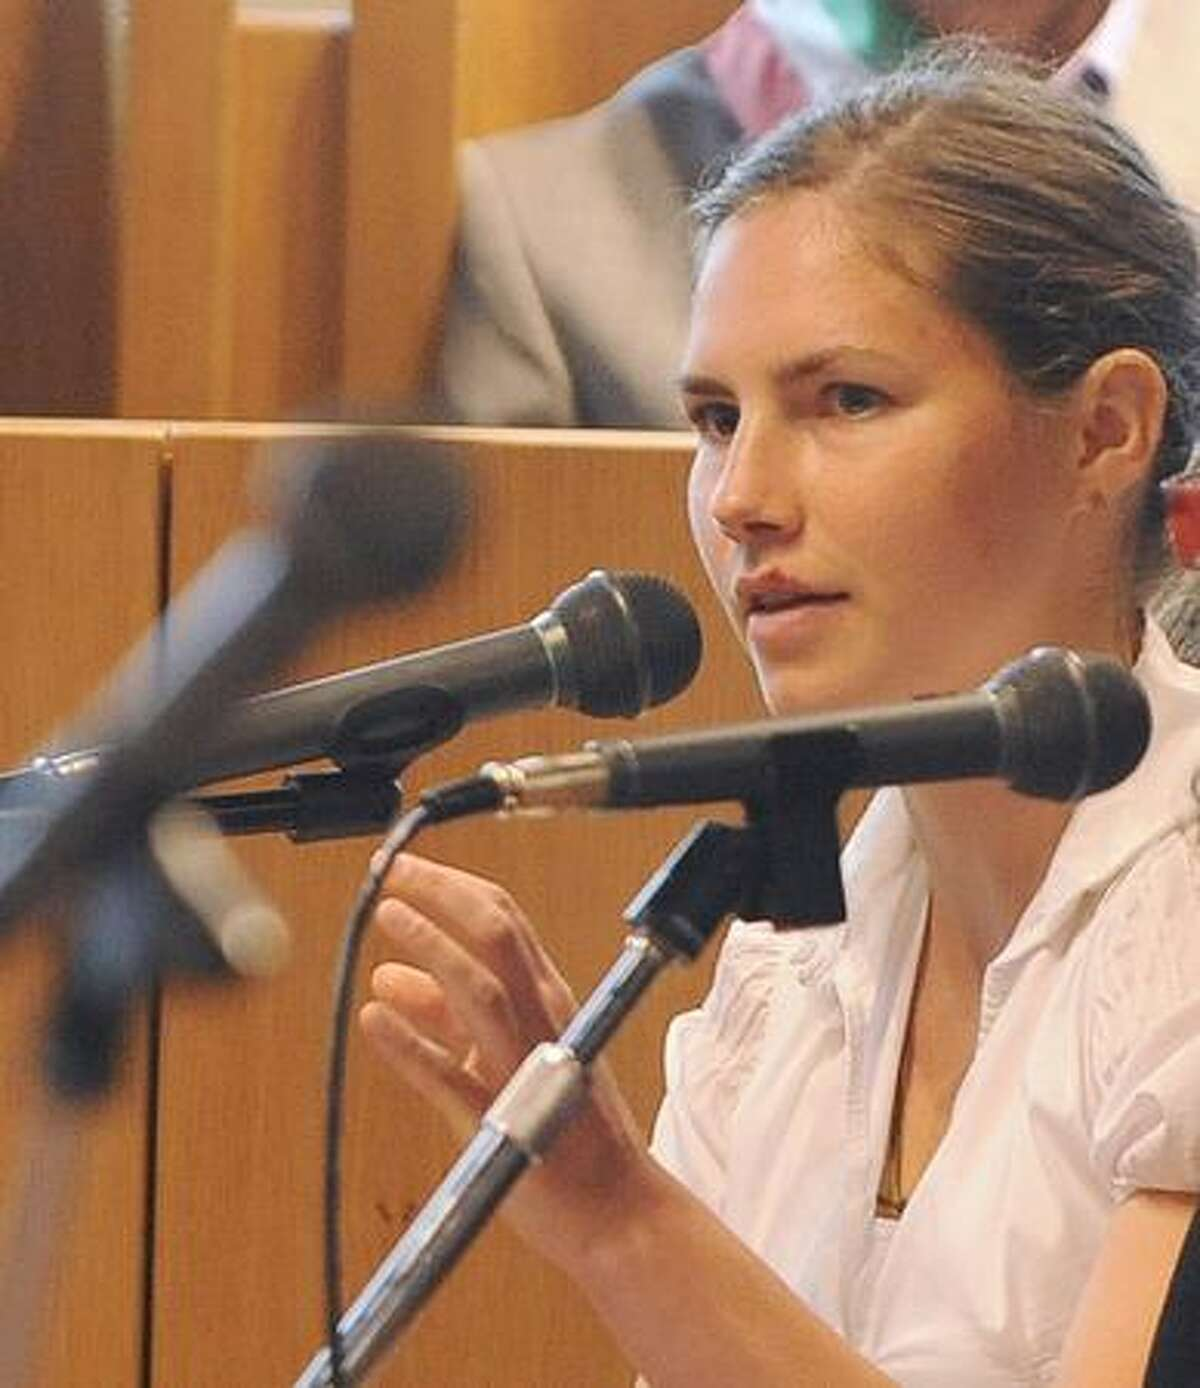 U.S.'s Amanda Knox, accused of killing her British housemate two-years ago, testifies for the first time during her trial on Friday in the courtroom in Perugia. Knox was testifying during this court session for the first time in her sex-murder trial, with the American accused of taking part in the 2007 killing of her British housemate Meredith Kercher in Italy.